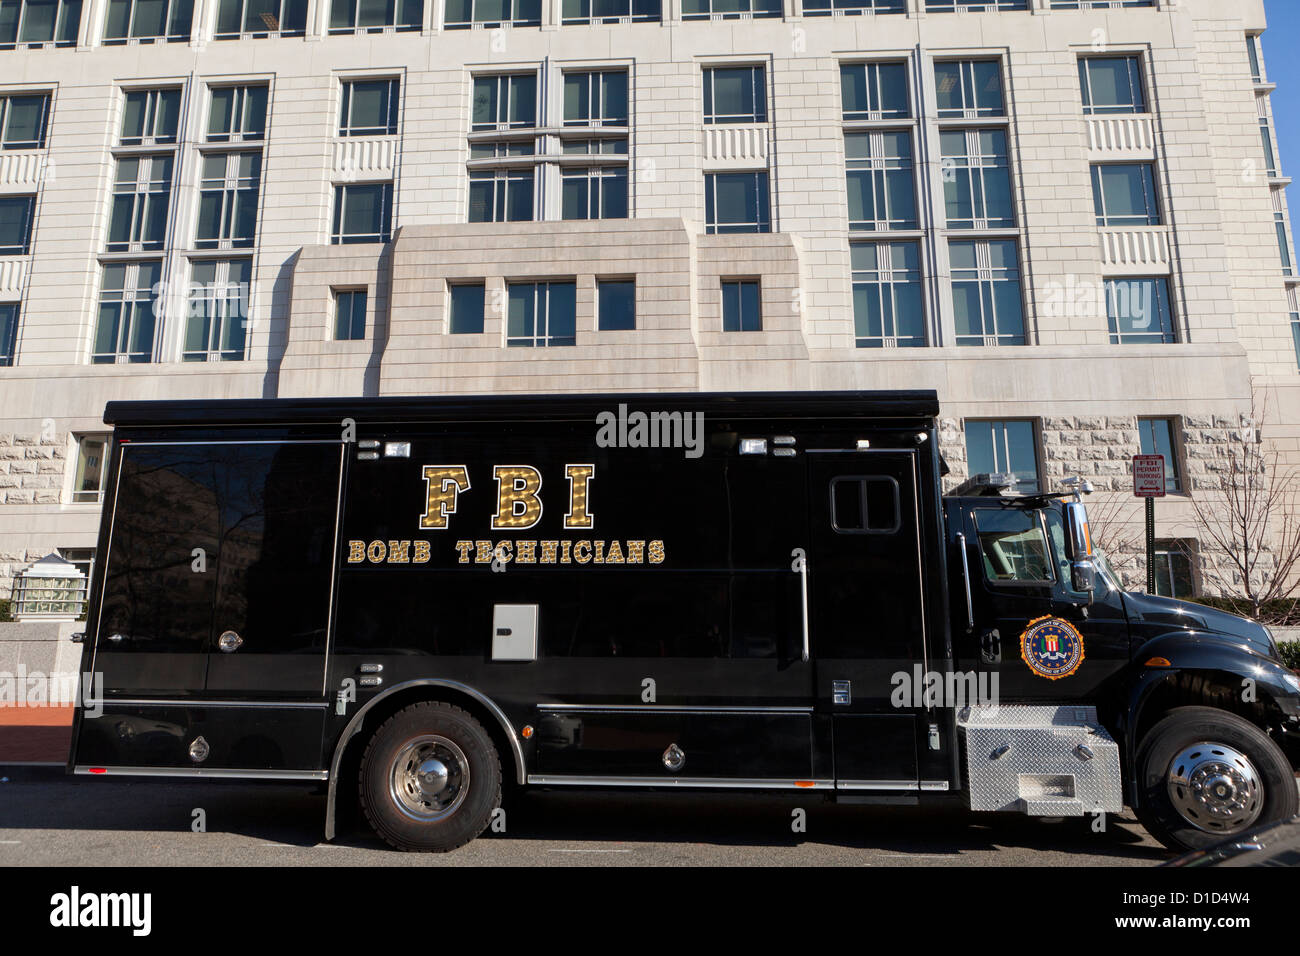 FBI Bomb Technician truck parked in front of FBI Field Office - Washington, DC USA - Stock Image